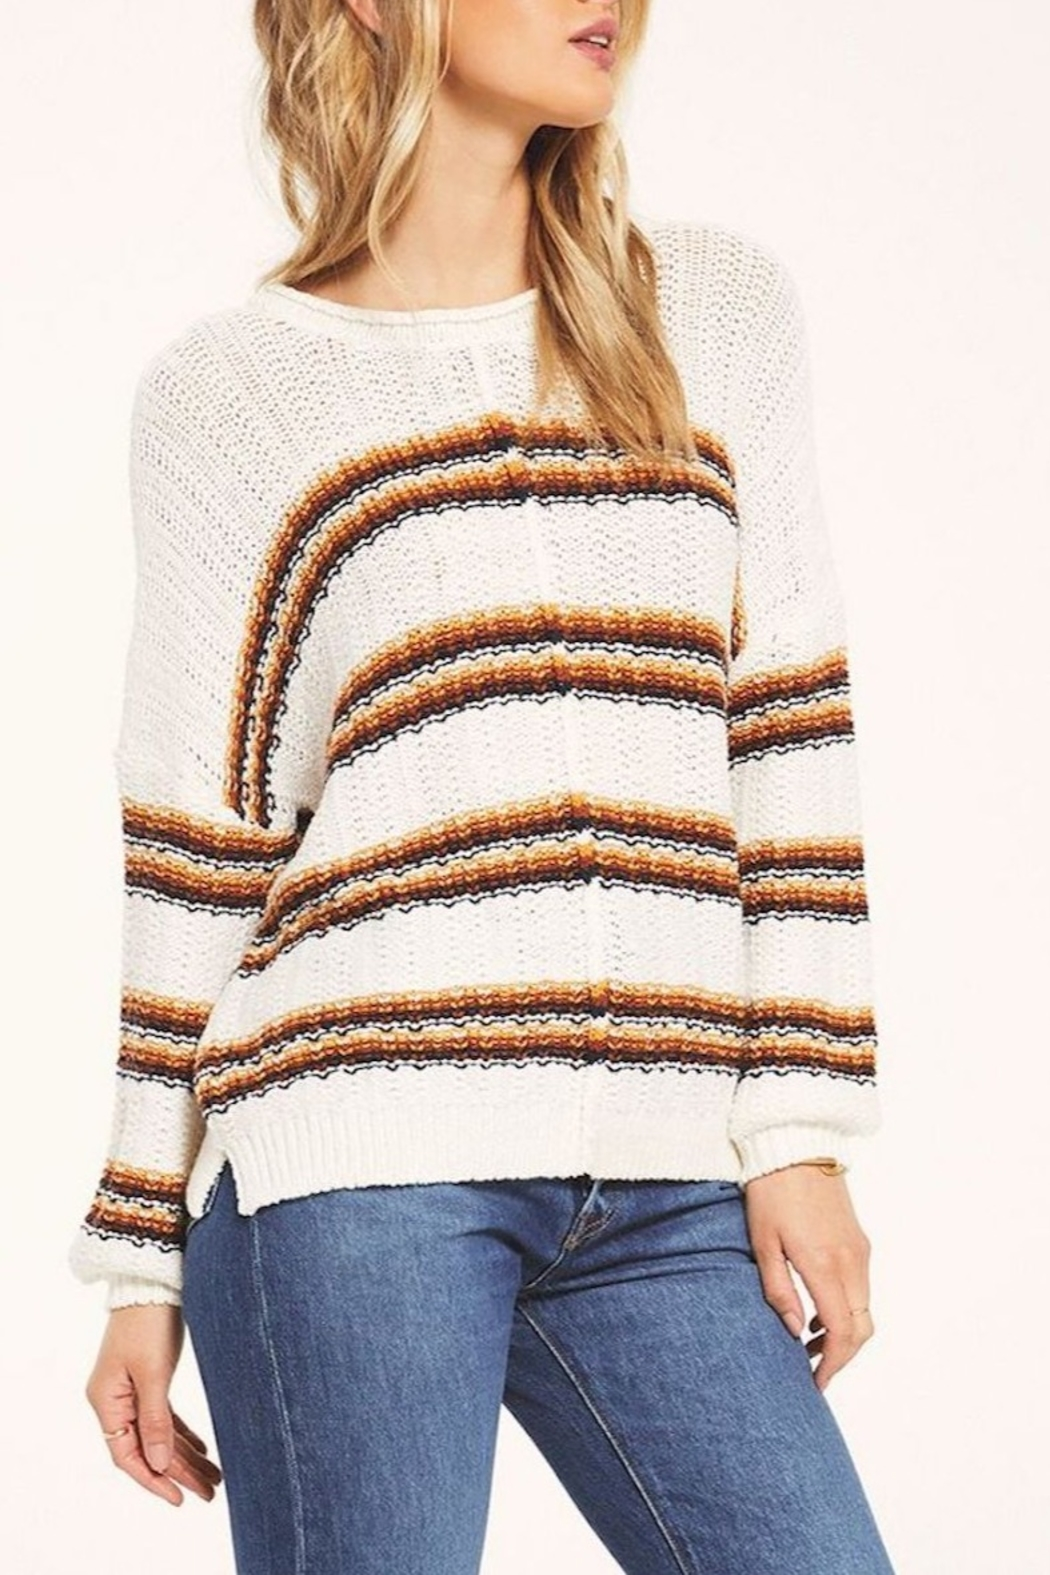 White Crow  Capitan Roll-Knit Sweater - Back Cropped Image